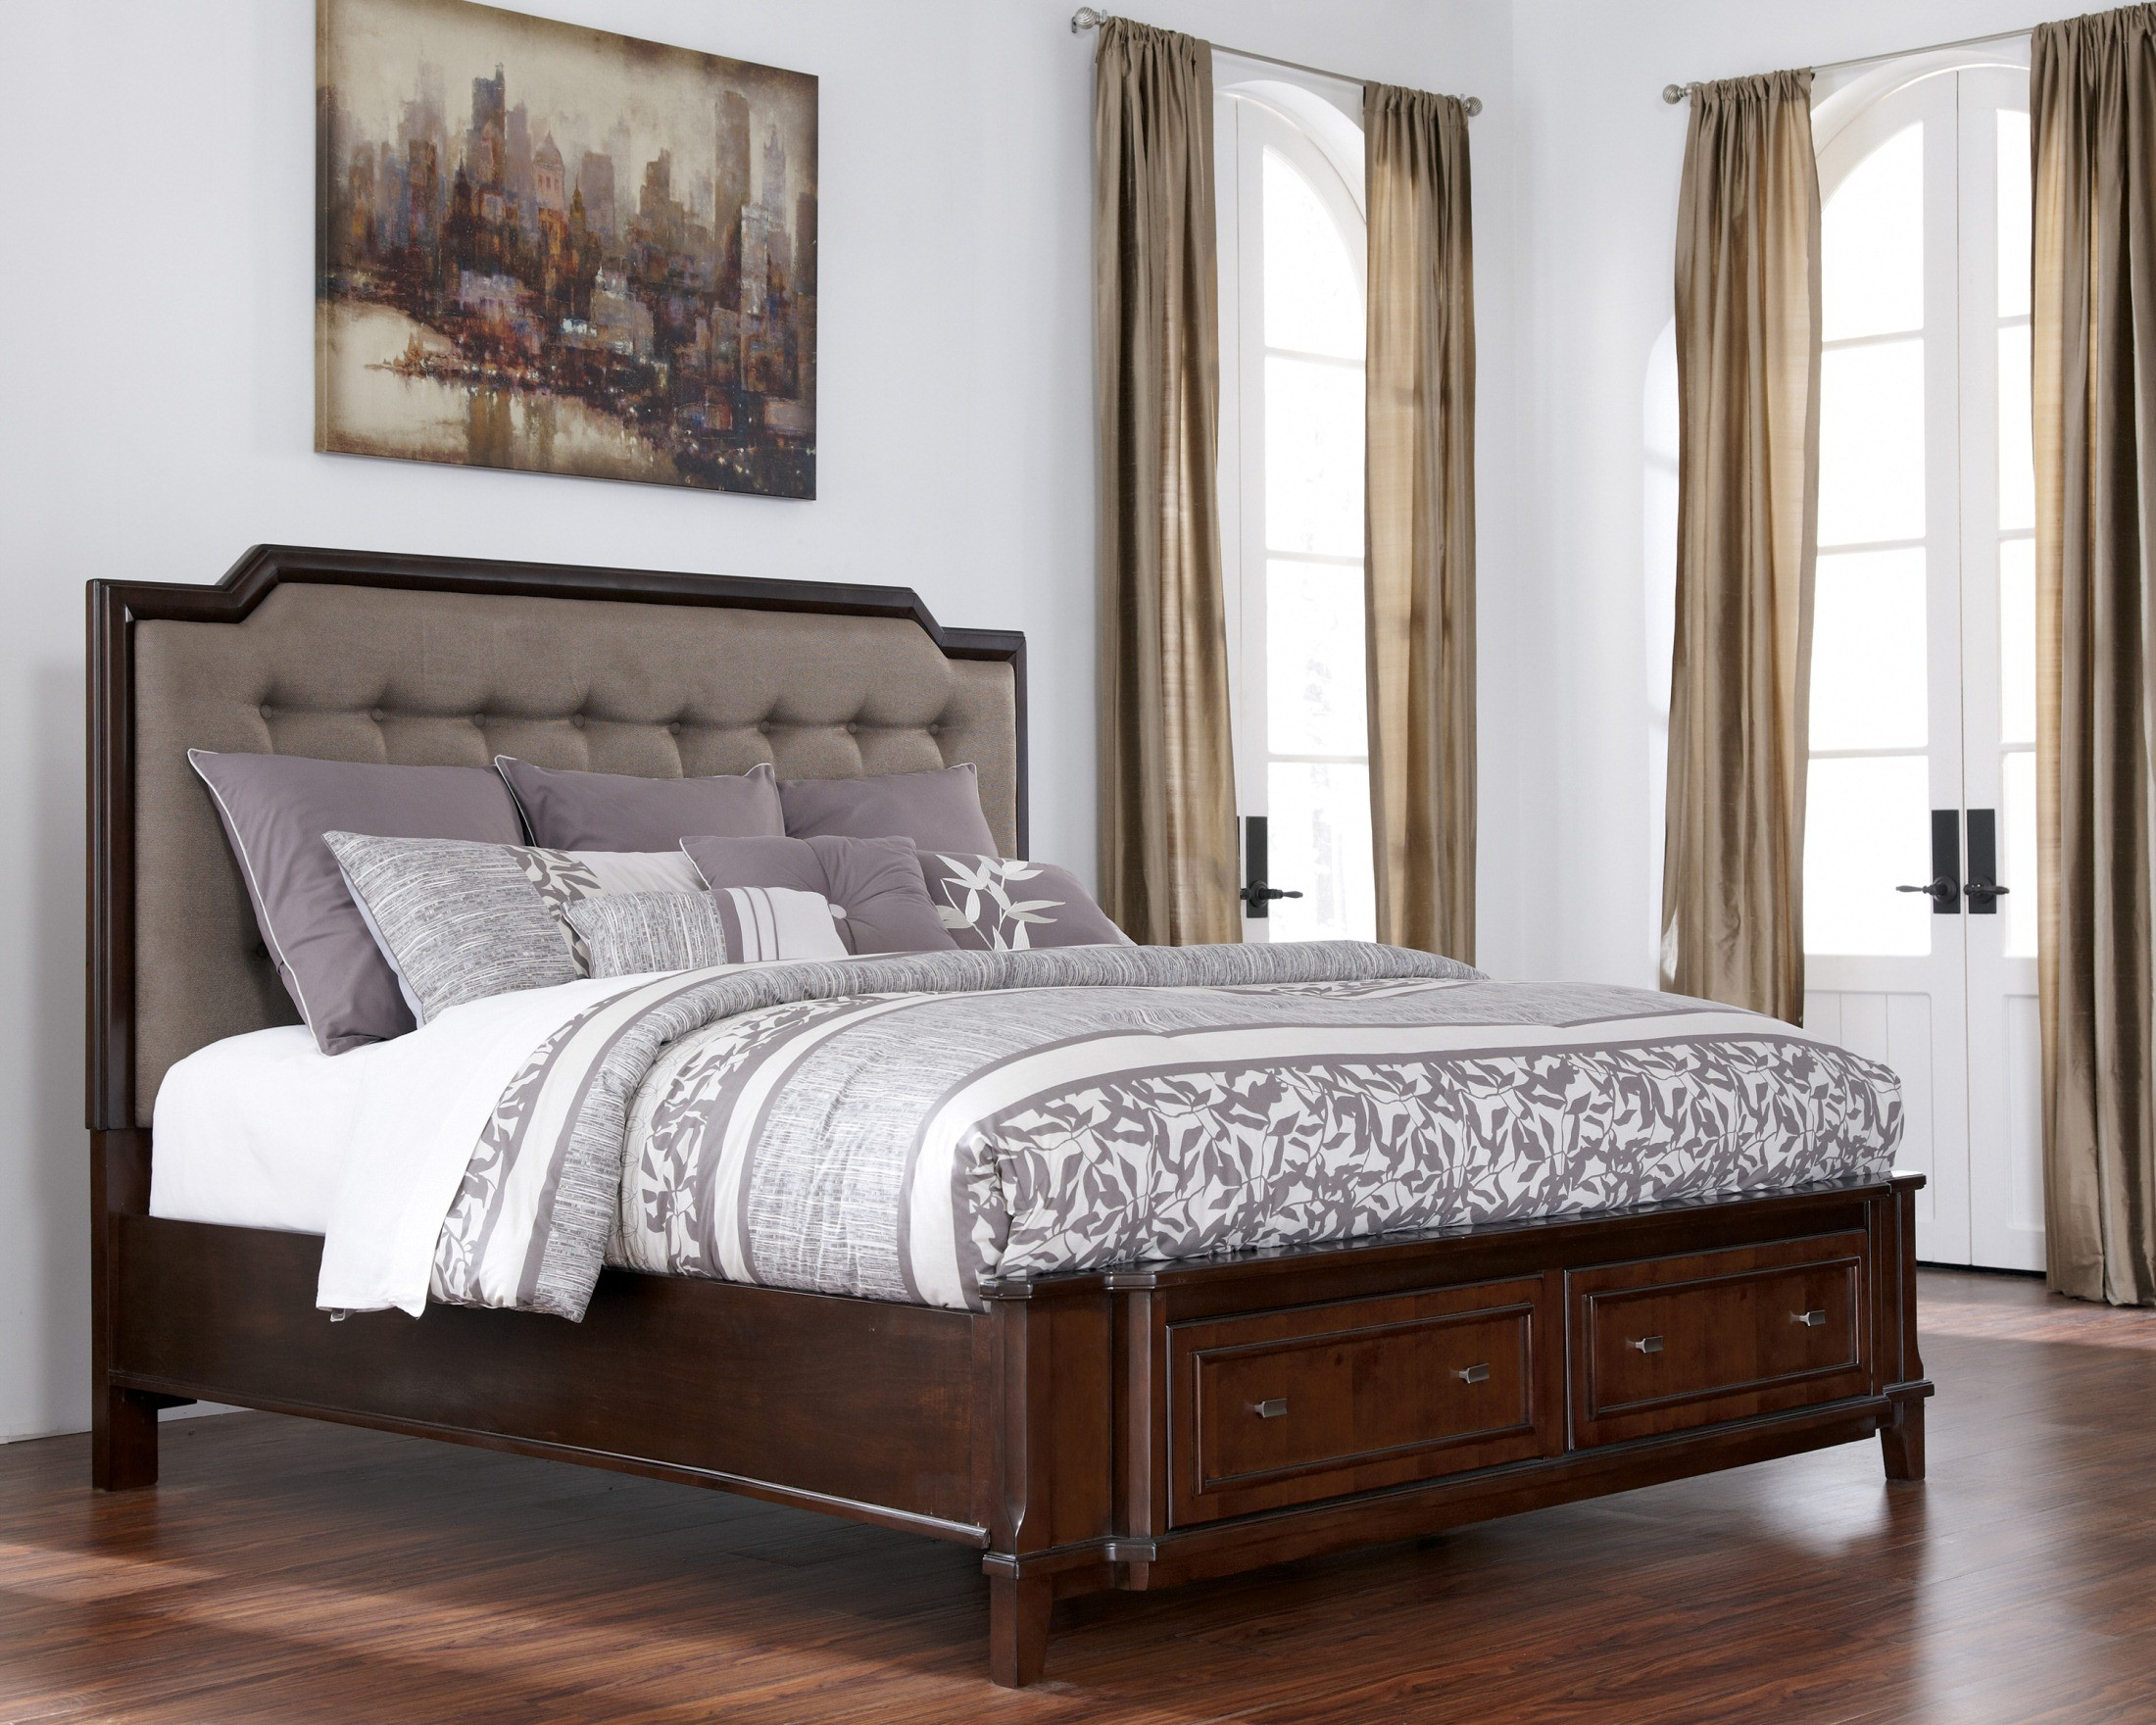 Larimer cal king upholstered storage bed b654 78 76 95 for Upholstered king bed with storage